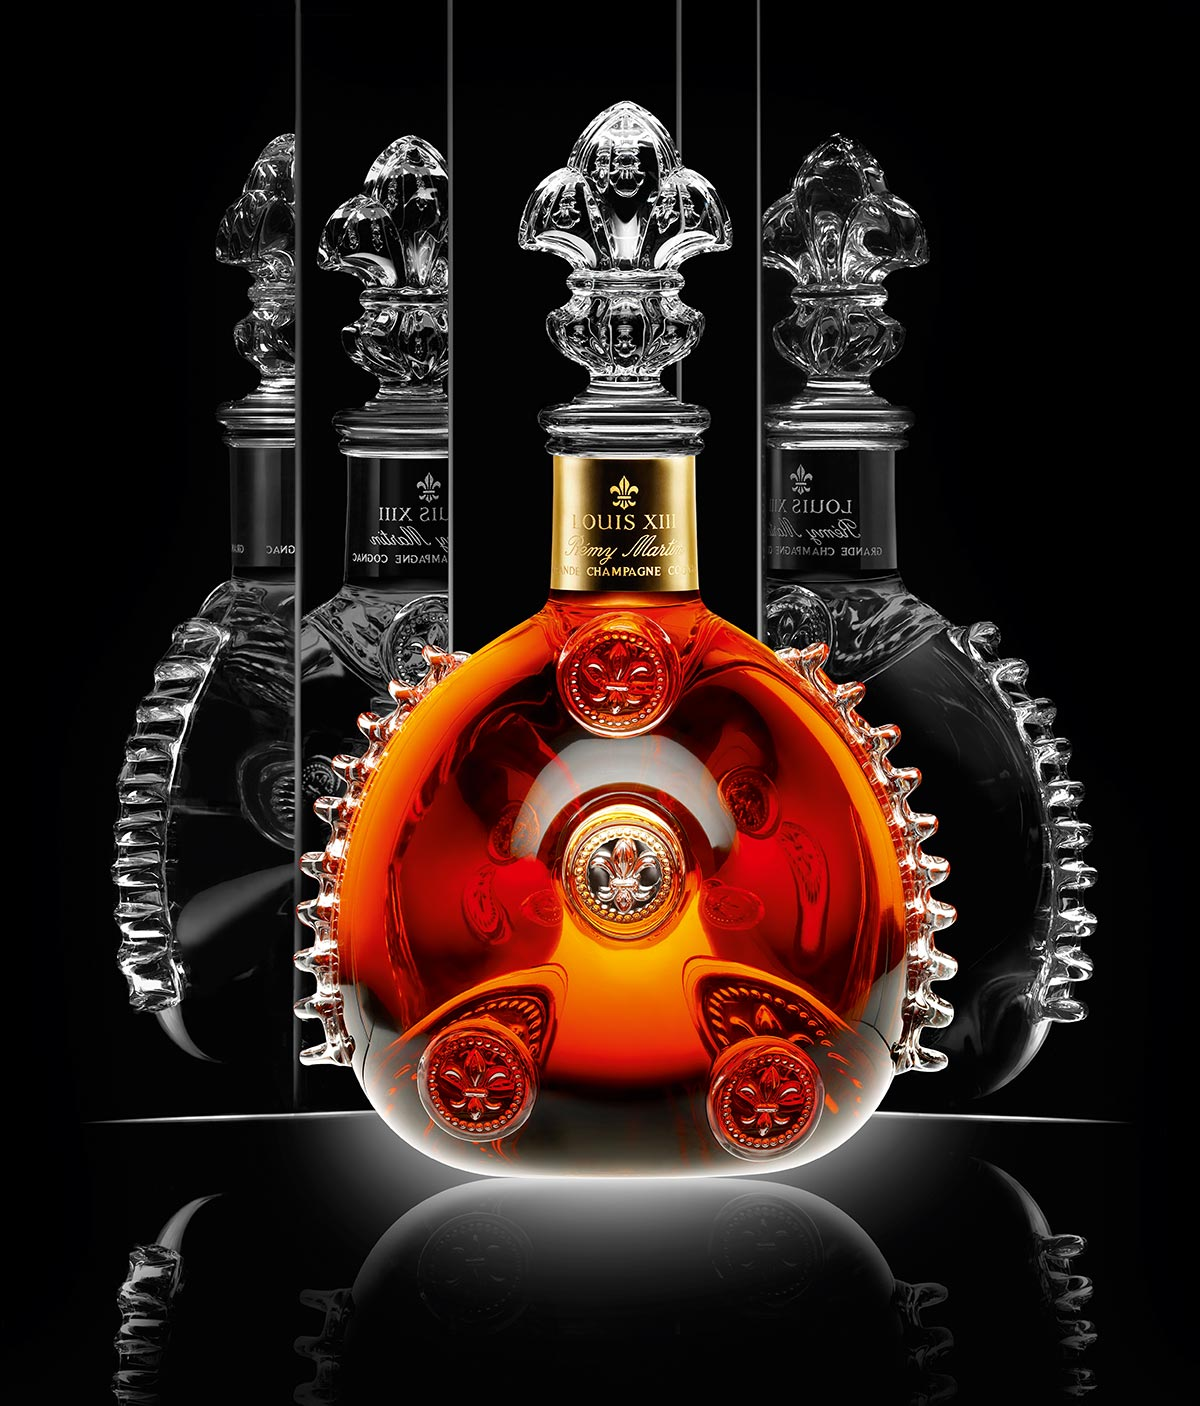 The LOUIS XIII decanter